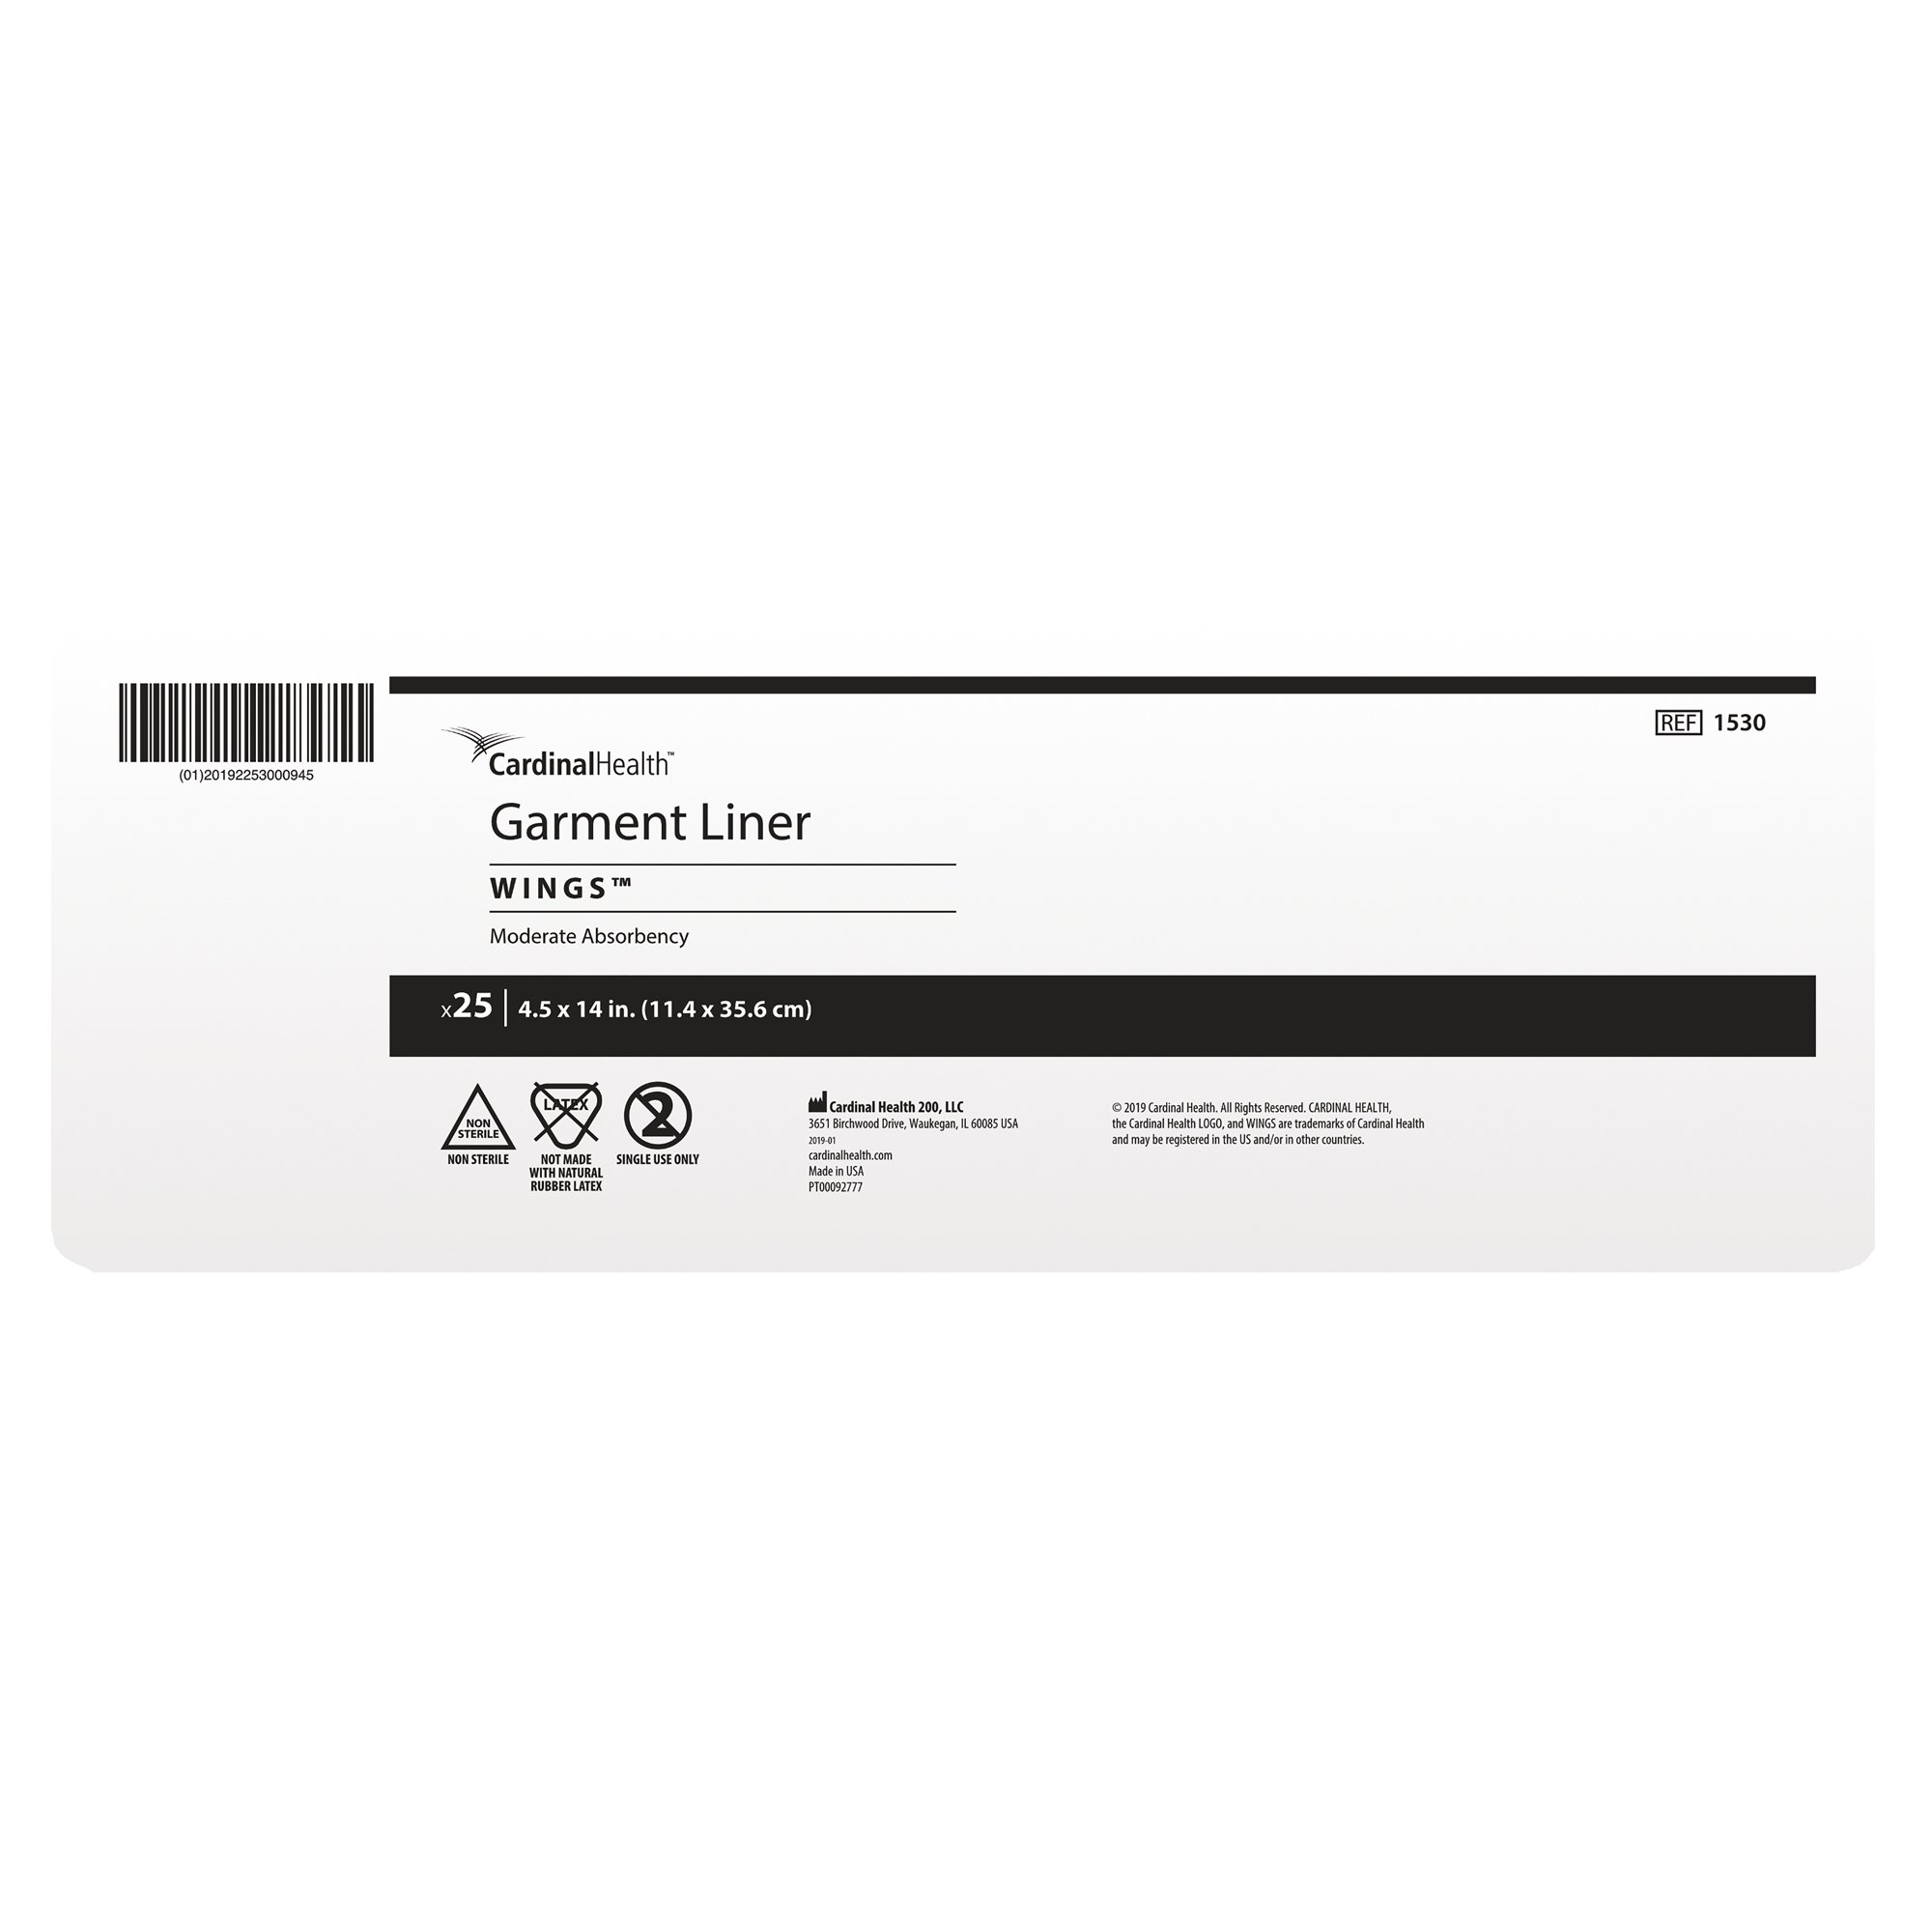 """CardinalHealth Garment Liner Wings, Moderate Absorbency, 1530, 4.5 X 14"""" - Case of 125 (5 Bags)"""